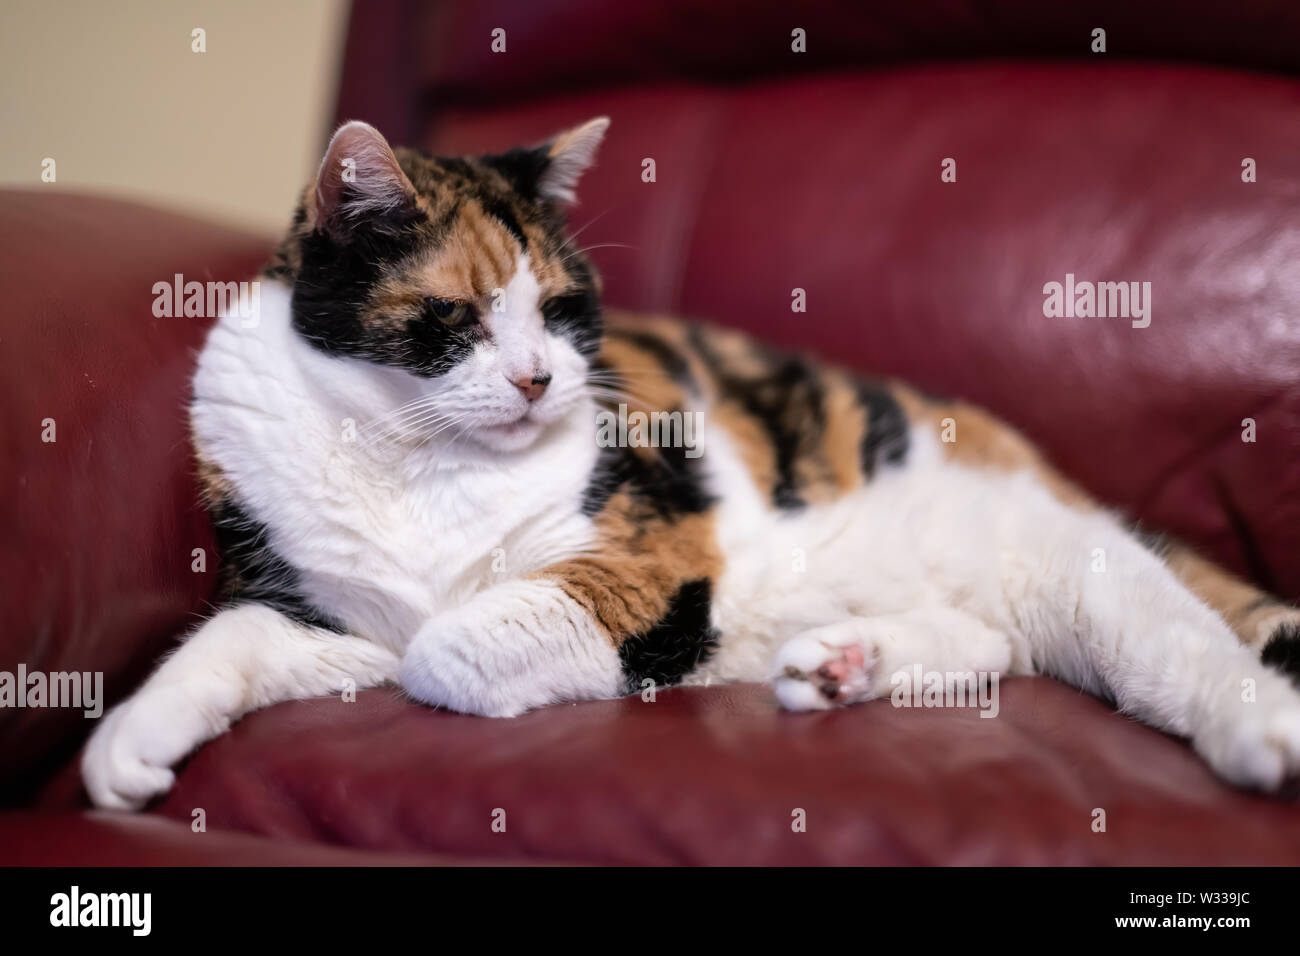 Closeup of senior old calico cat lying on living room red leather sofa couch in home corner, looking tired or annoyed - Stock Image